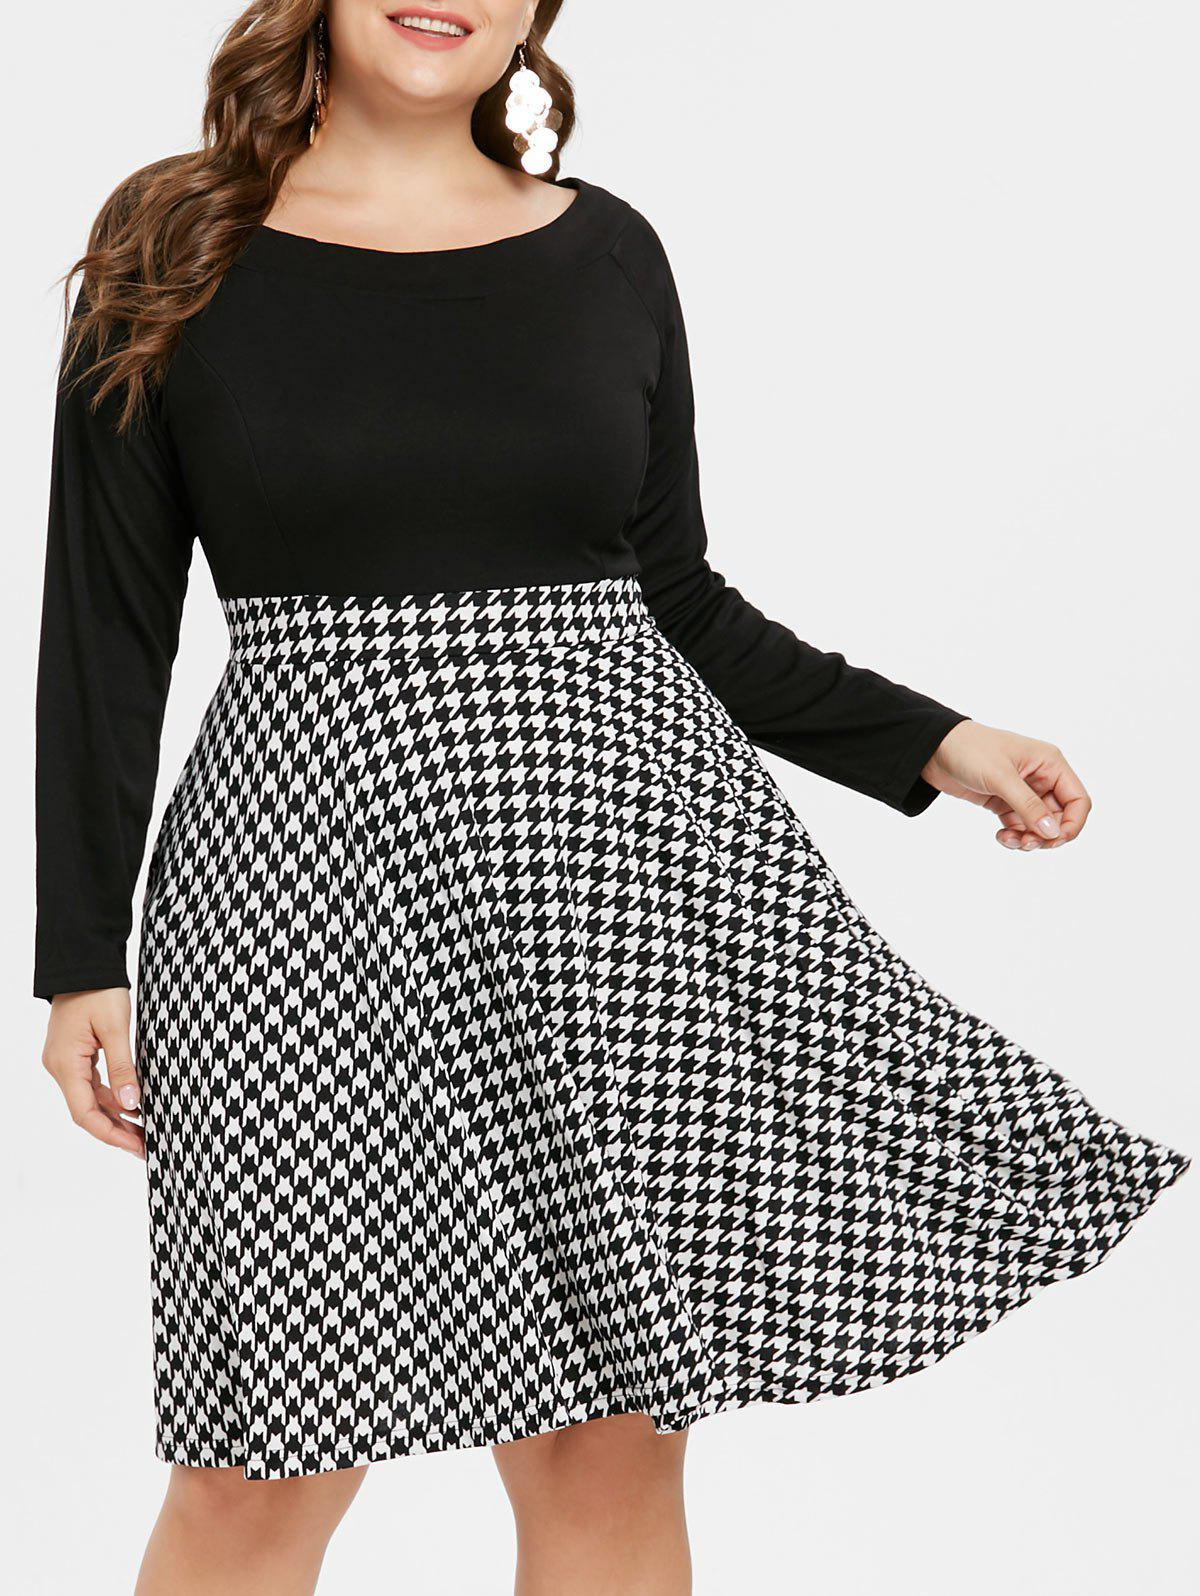 42% OFF] Houndstooth Pattern Plus Size Flare Dress | Rosegal